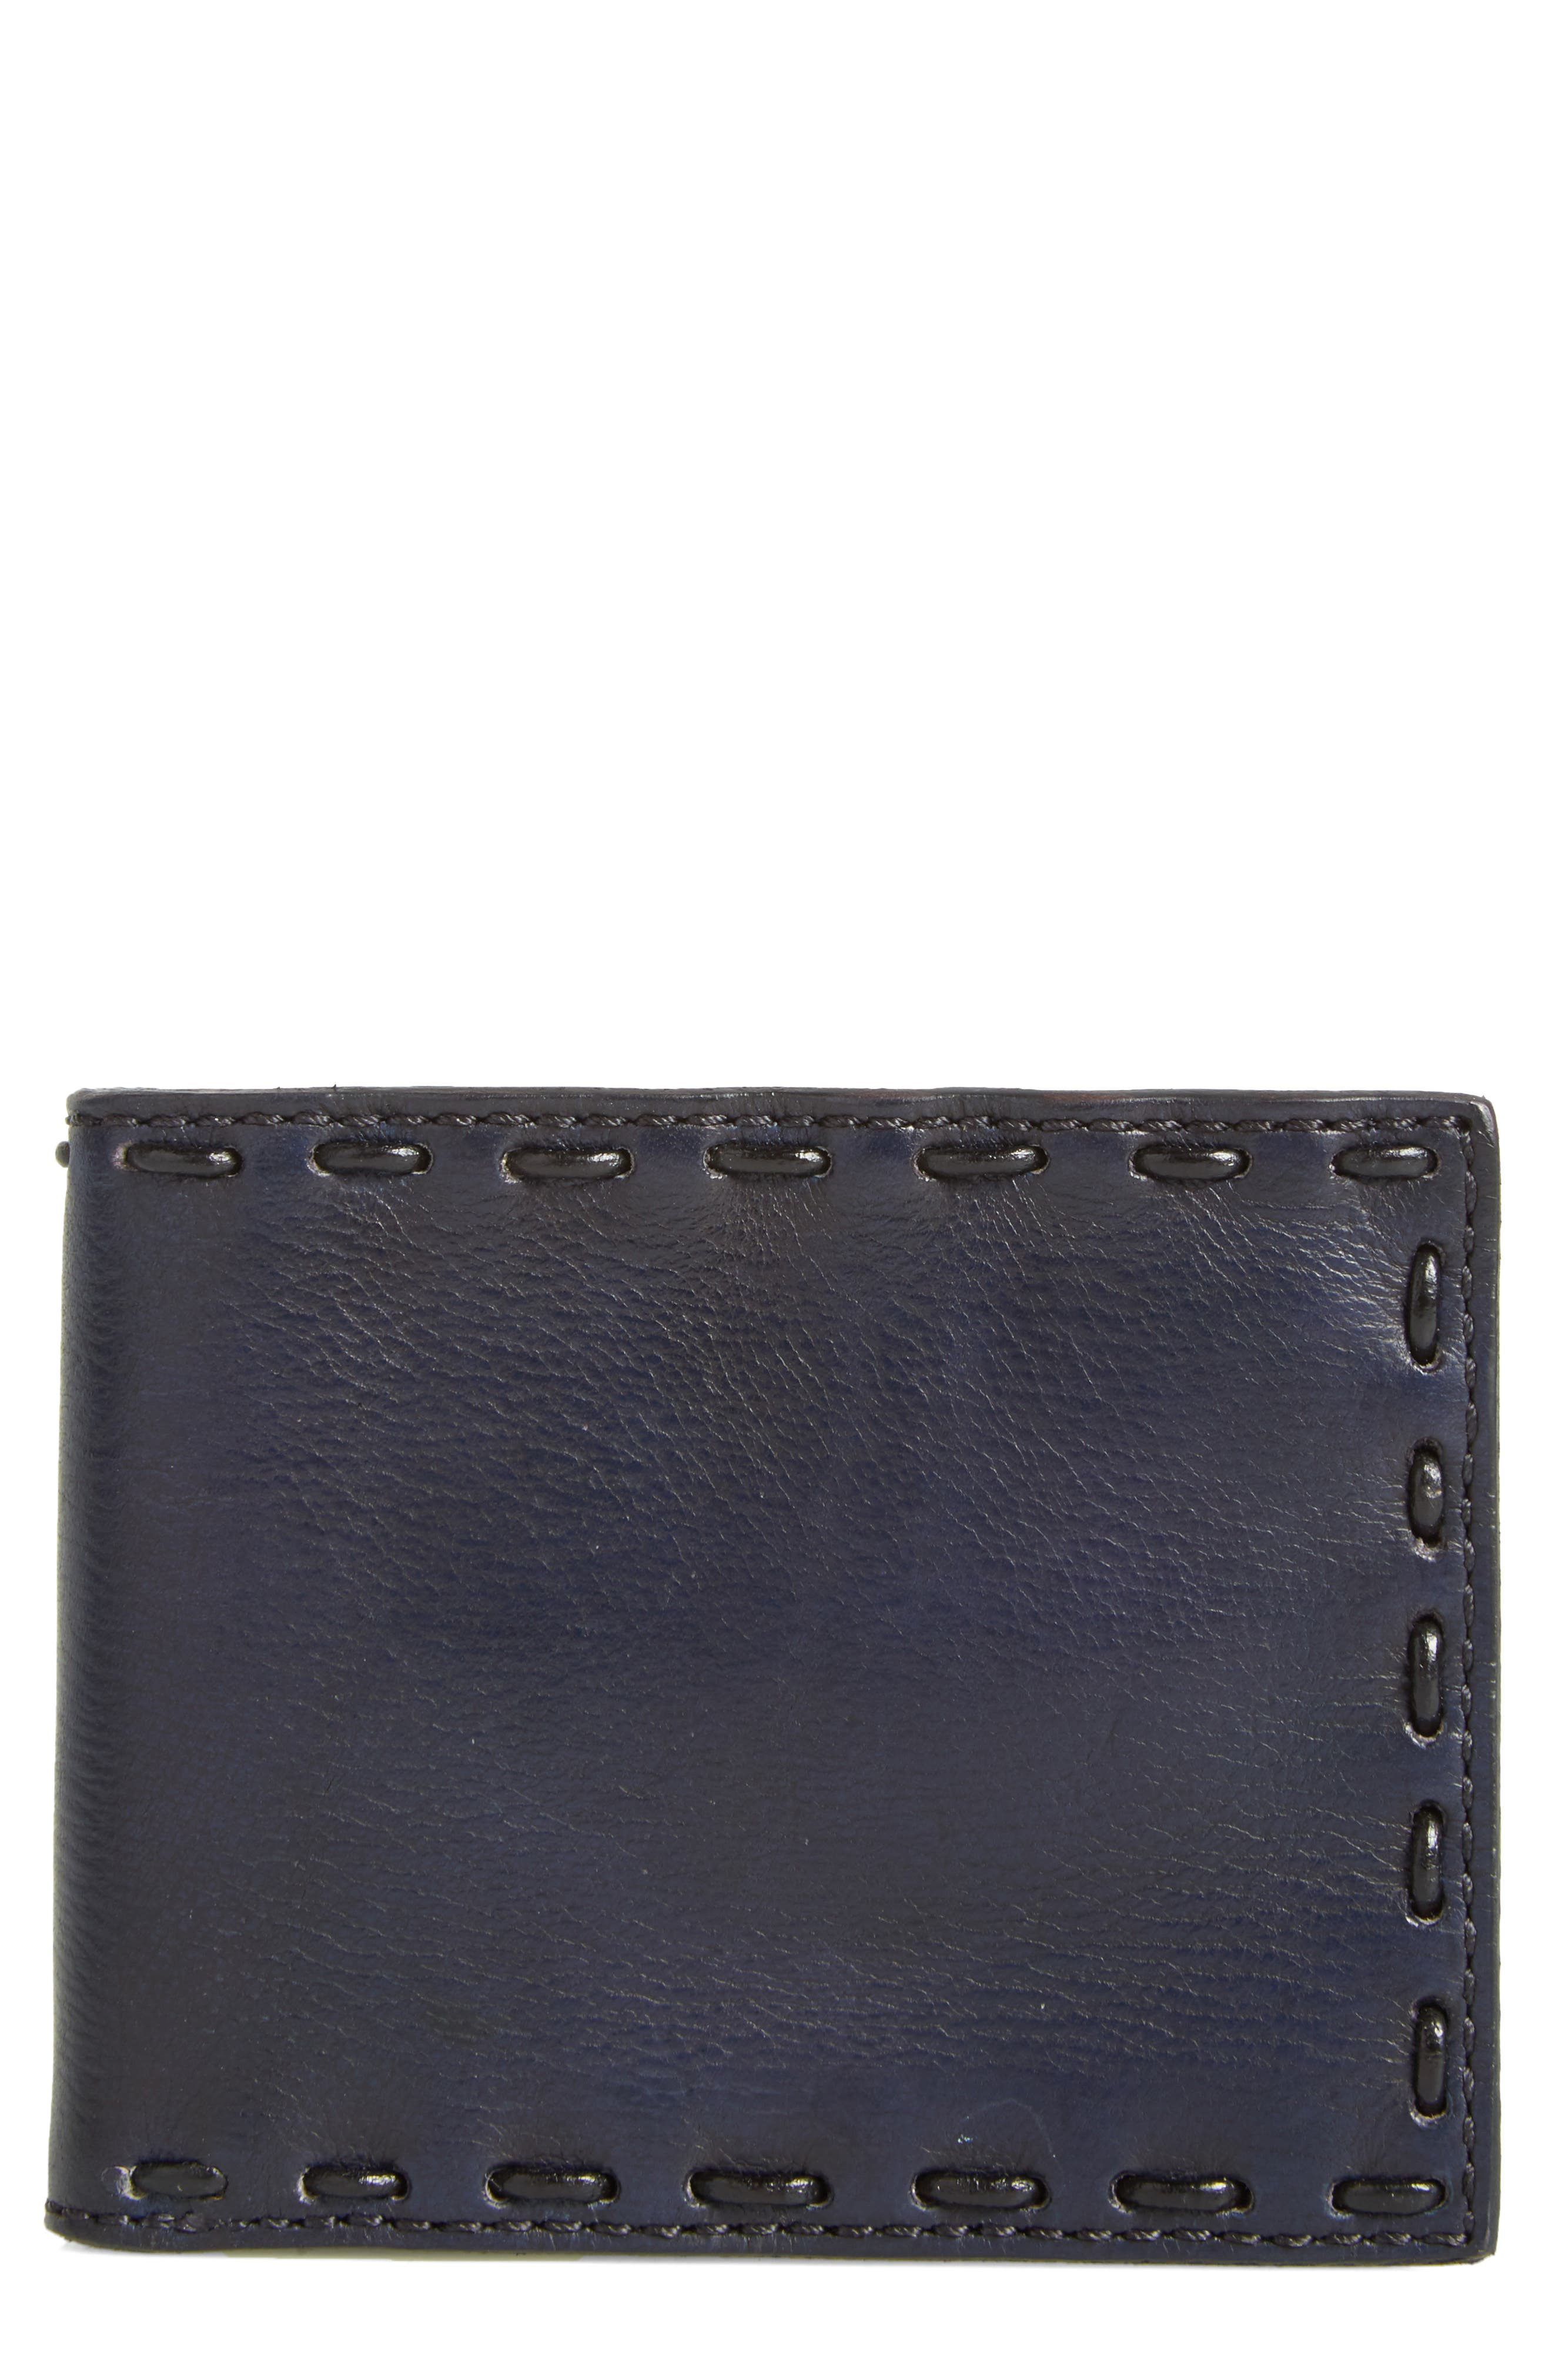 Pickstitch Leather Bifold Wallet,                             Main thumbnail 1, color,